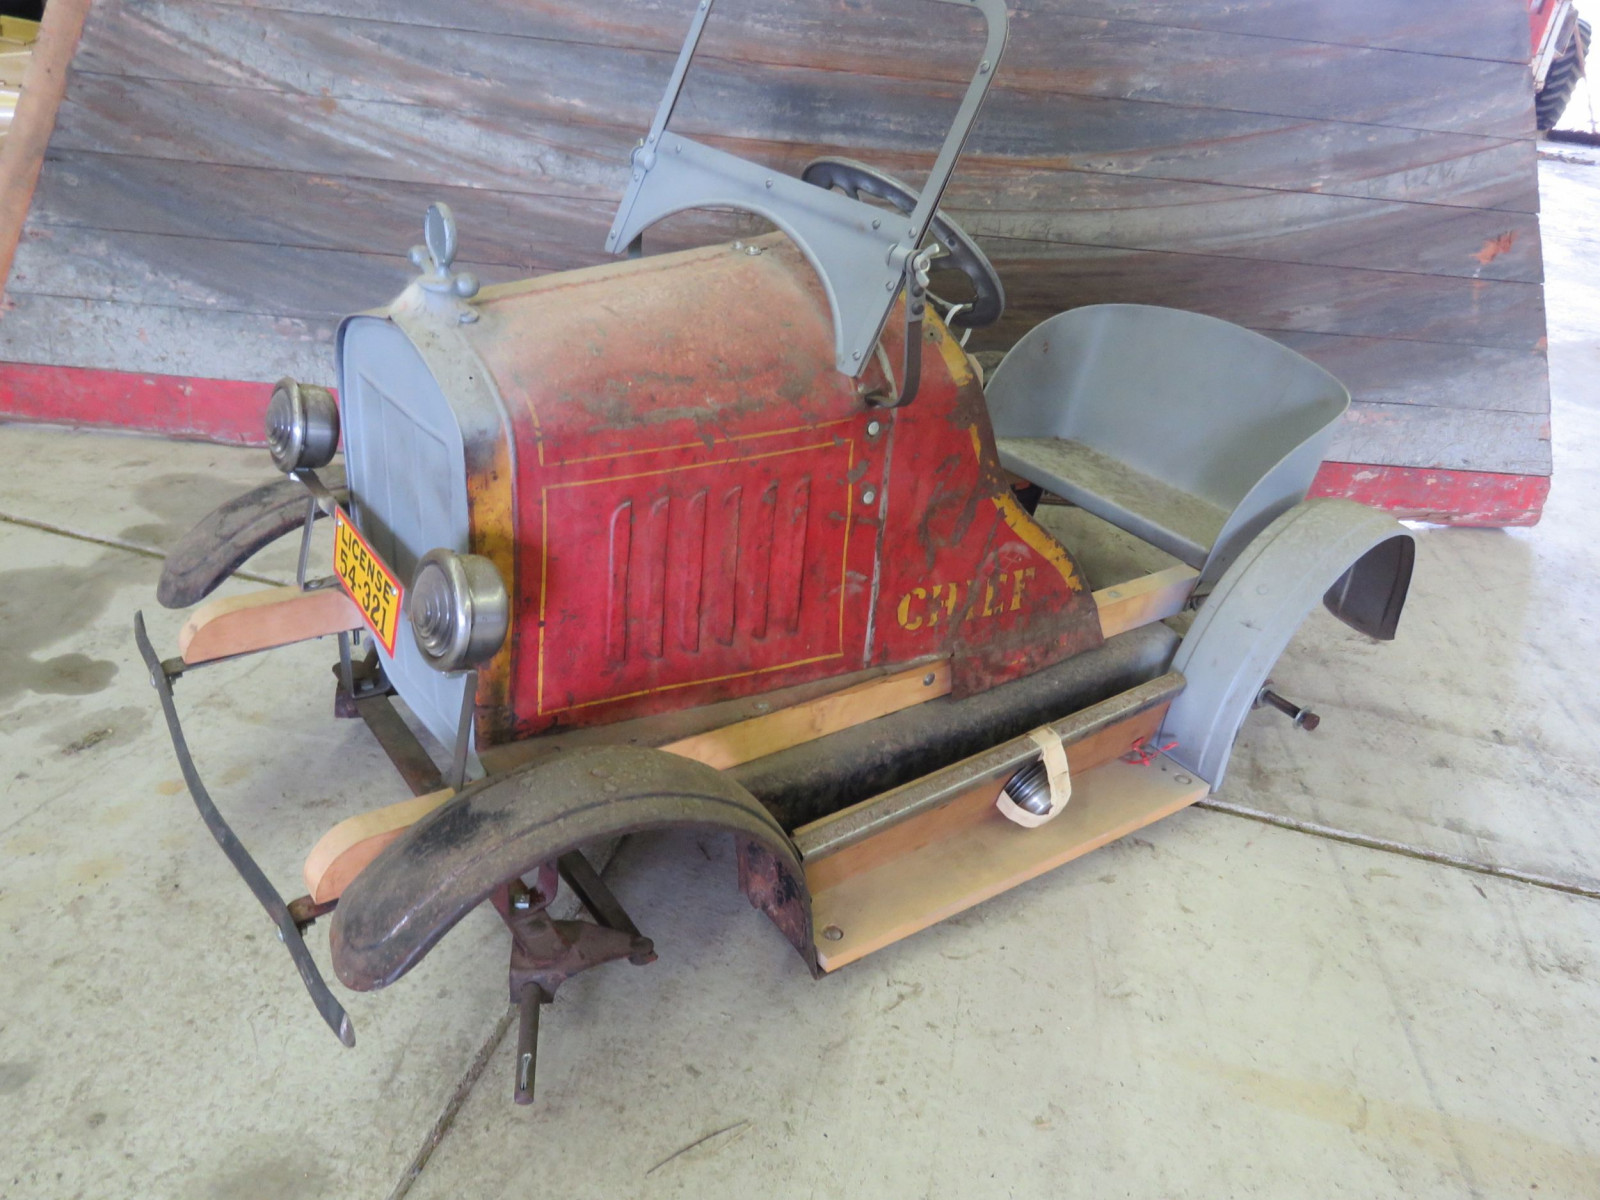 Rare SteelCraft Fire chief Pedal Car Project - Image 1